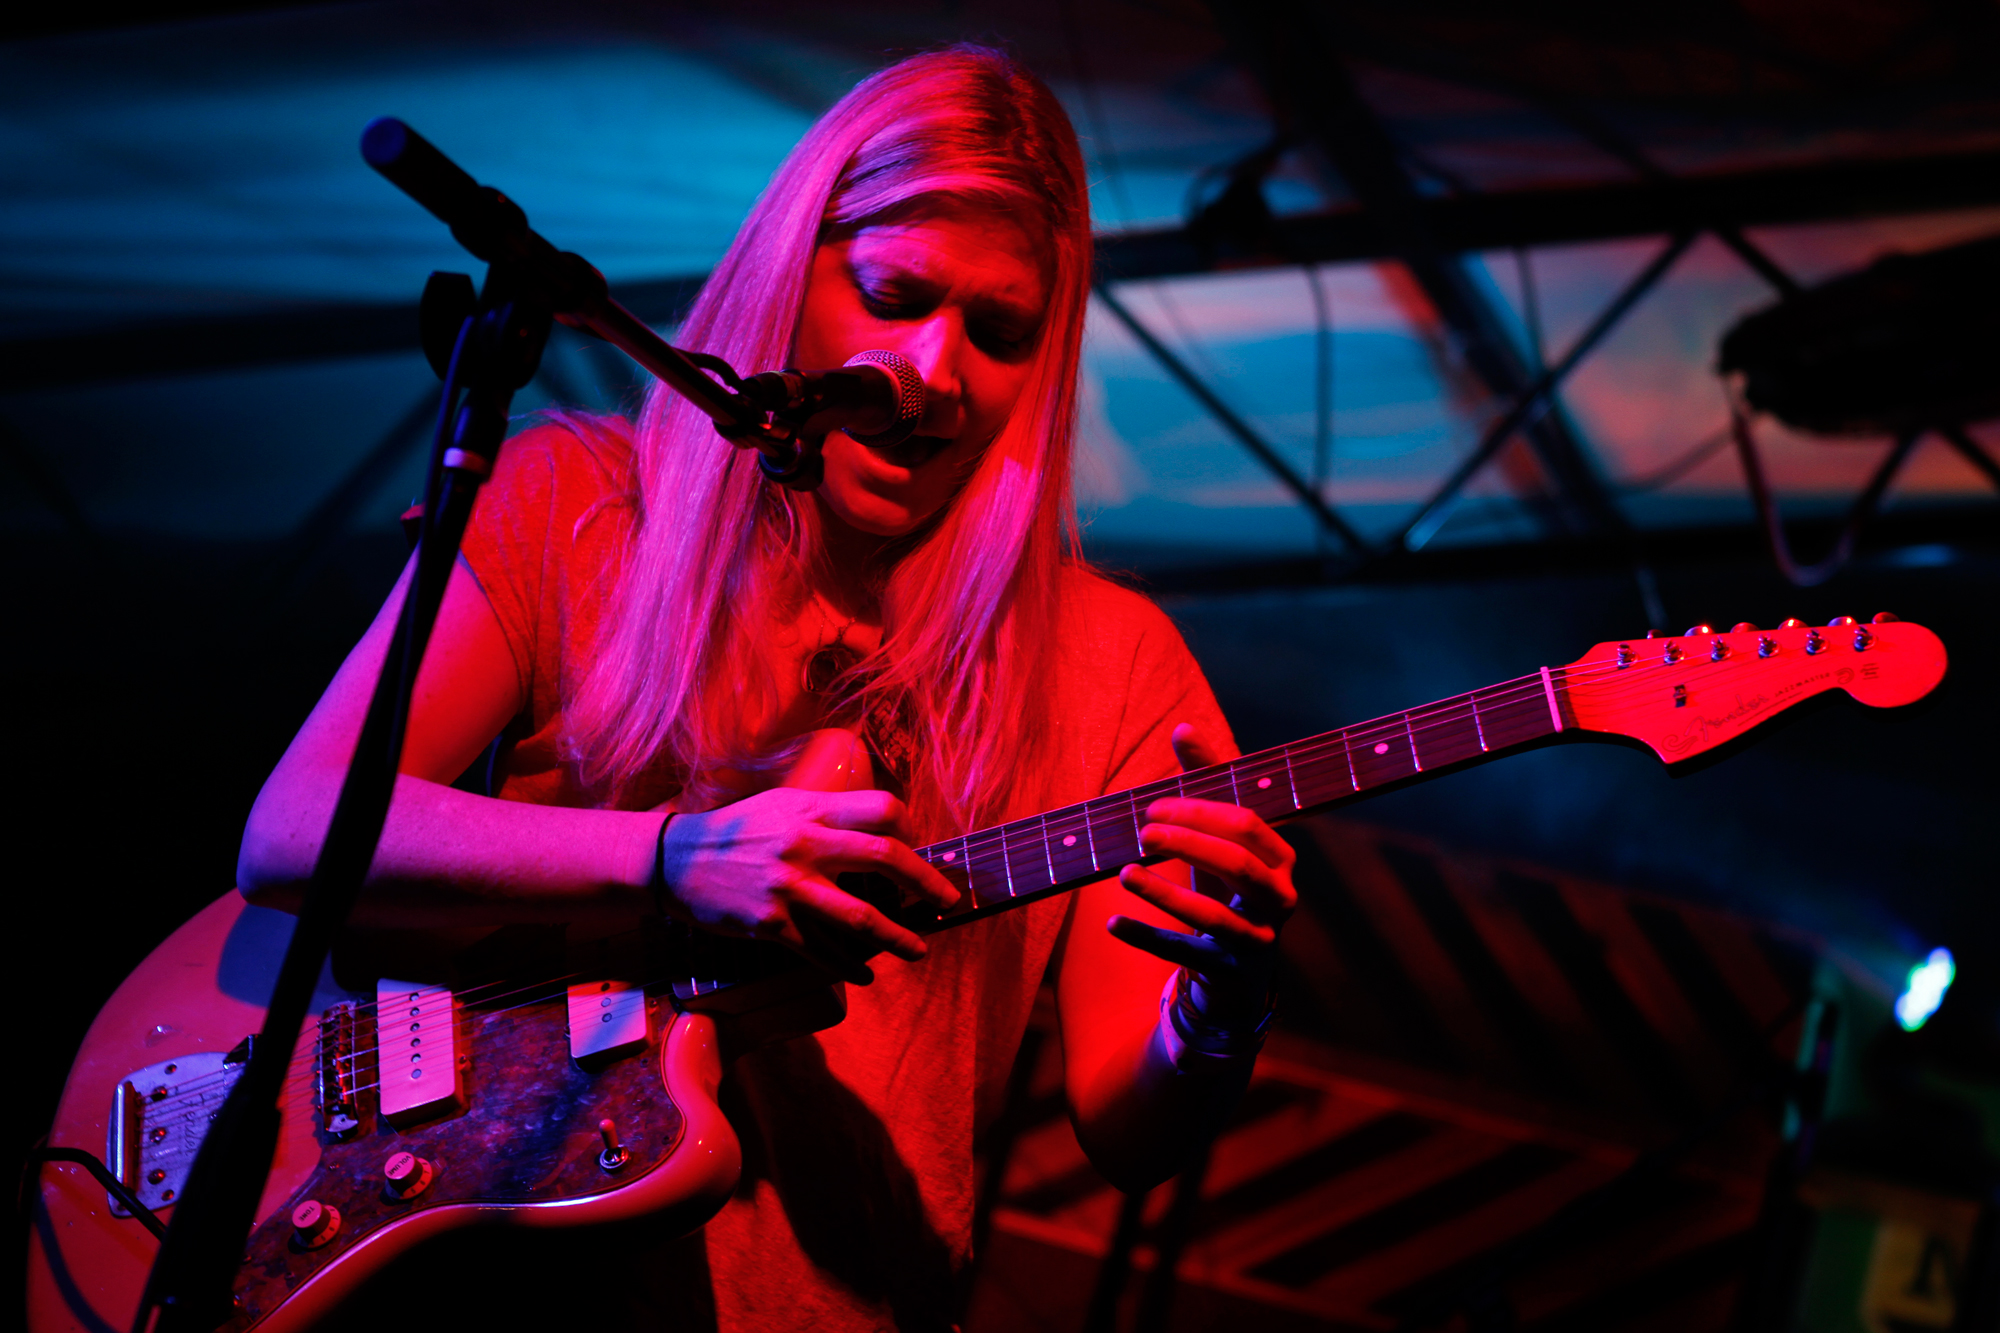 Marnie Stern performs at the Pitchfork showcase at The Mohawk during South By Southwest in Austin, Texas on March 12, 2013.